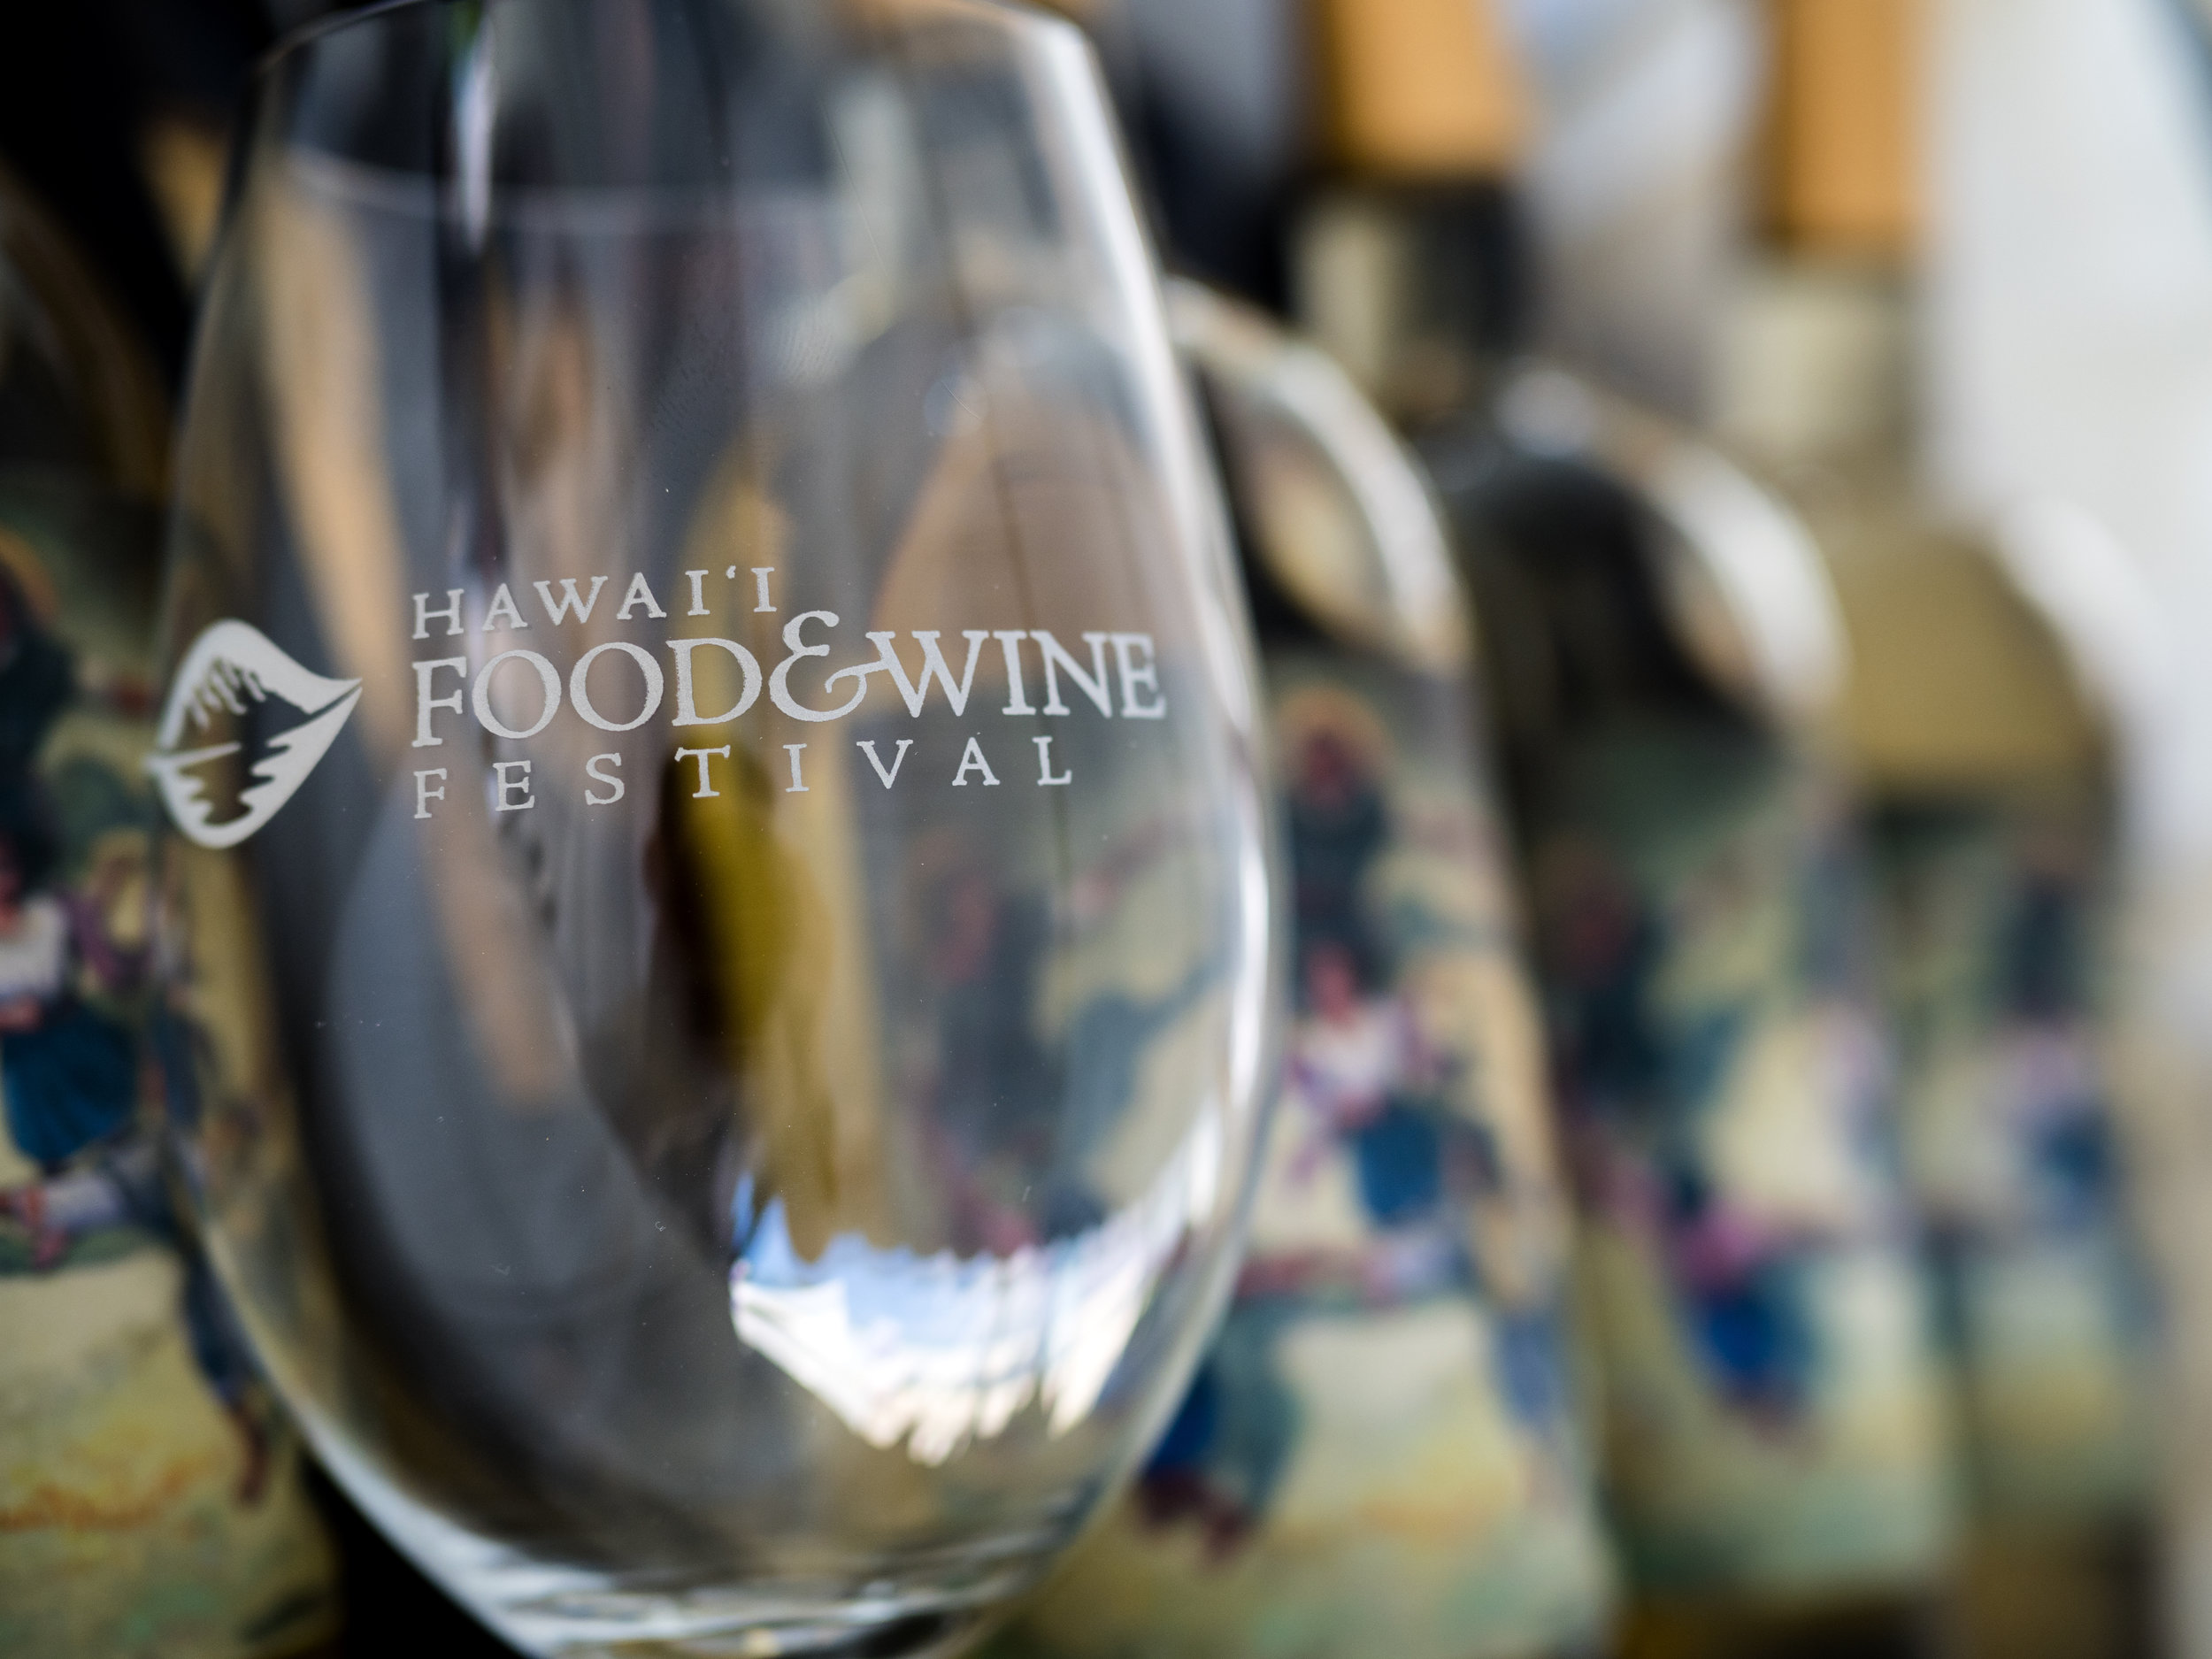 Musings by the Glass - Hawaii Food and Wine Festival - Hawaii Food and Wine Festival Wine Glass